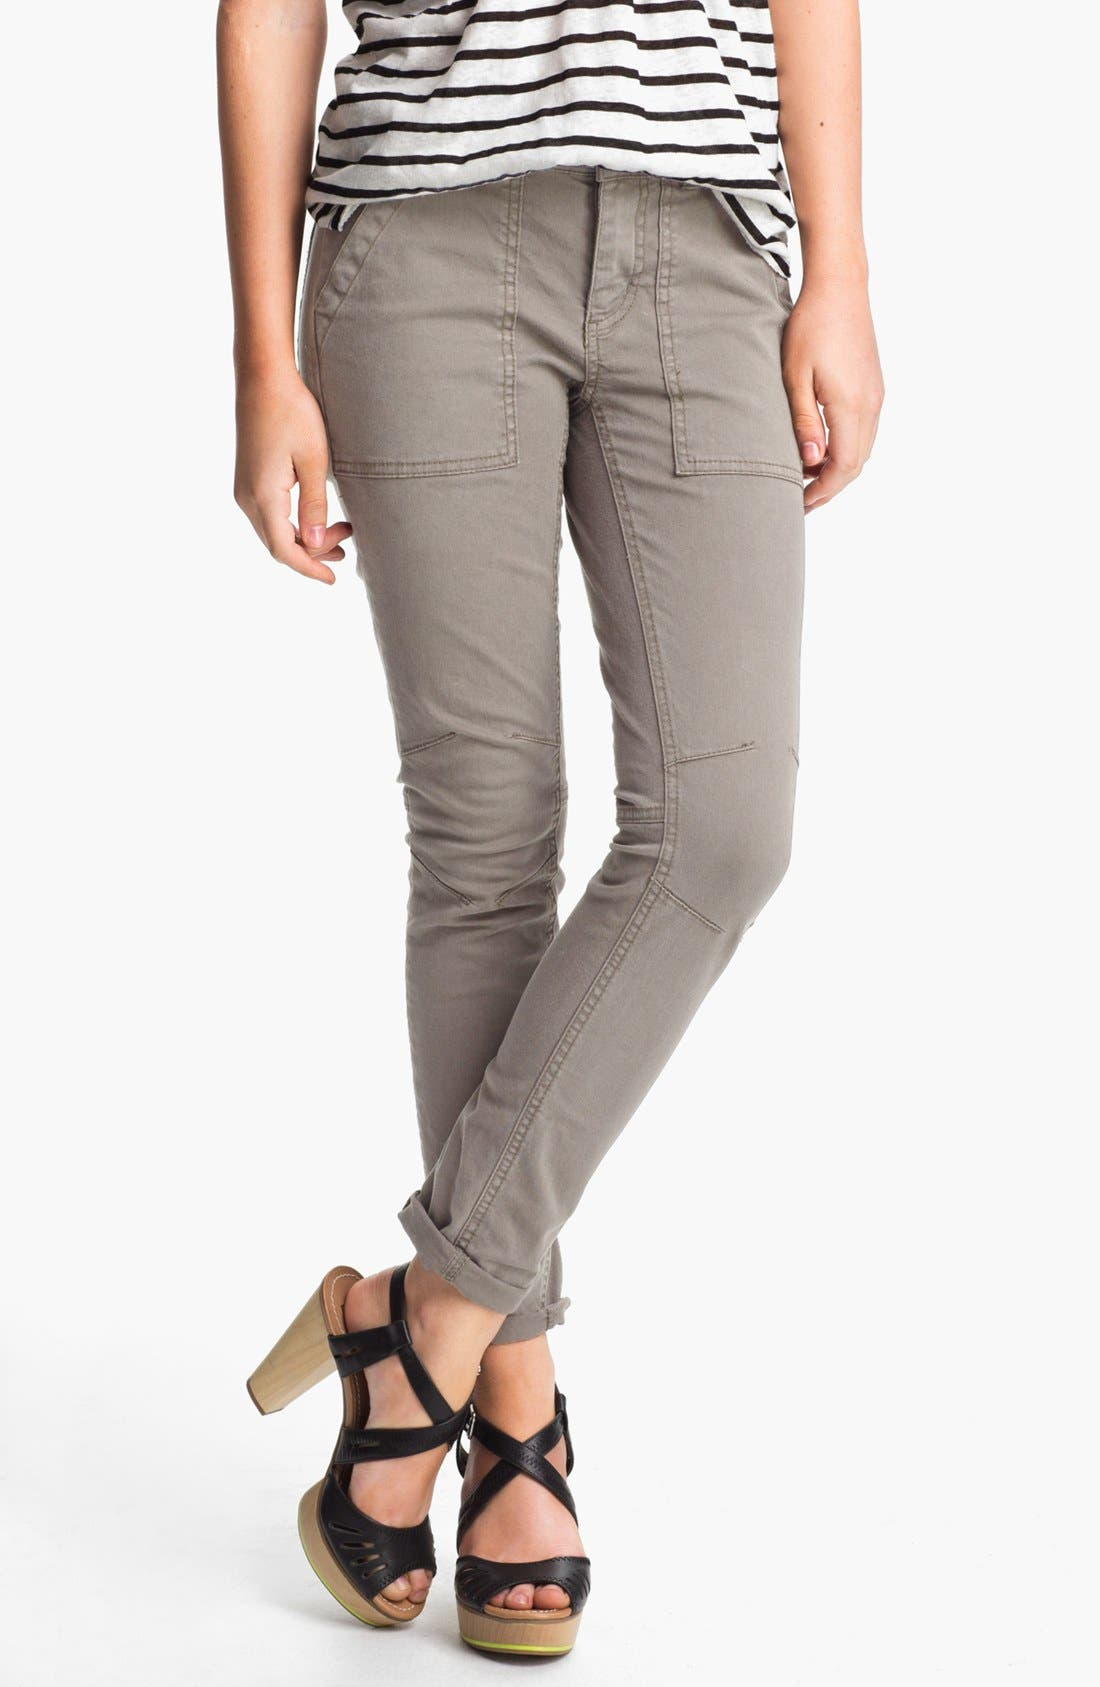 Alternate Image 1 Selected - Free People Skinny Utility Pants